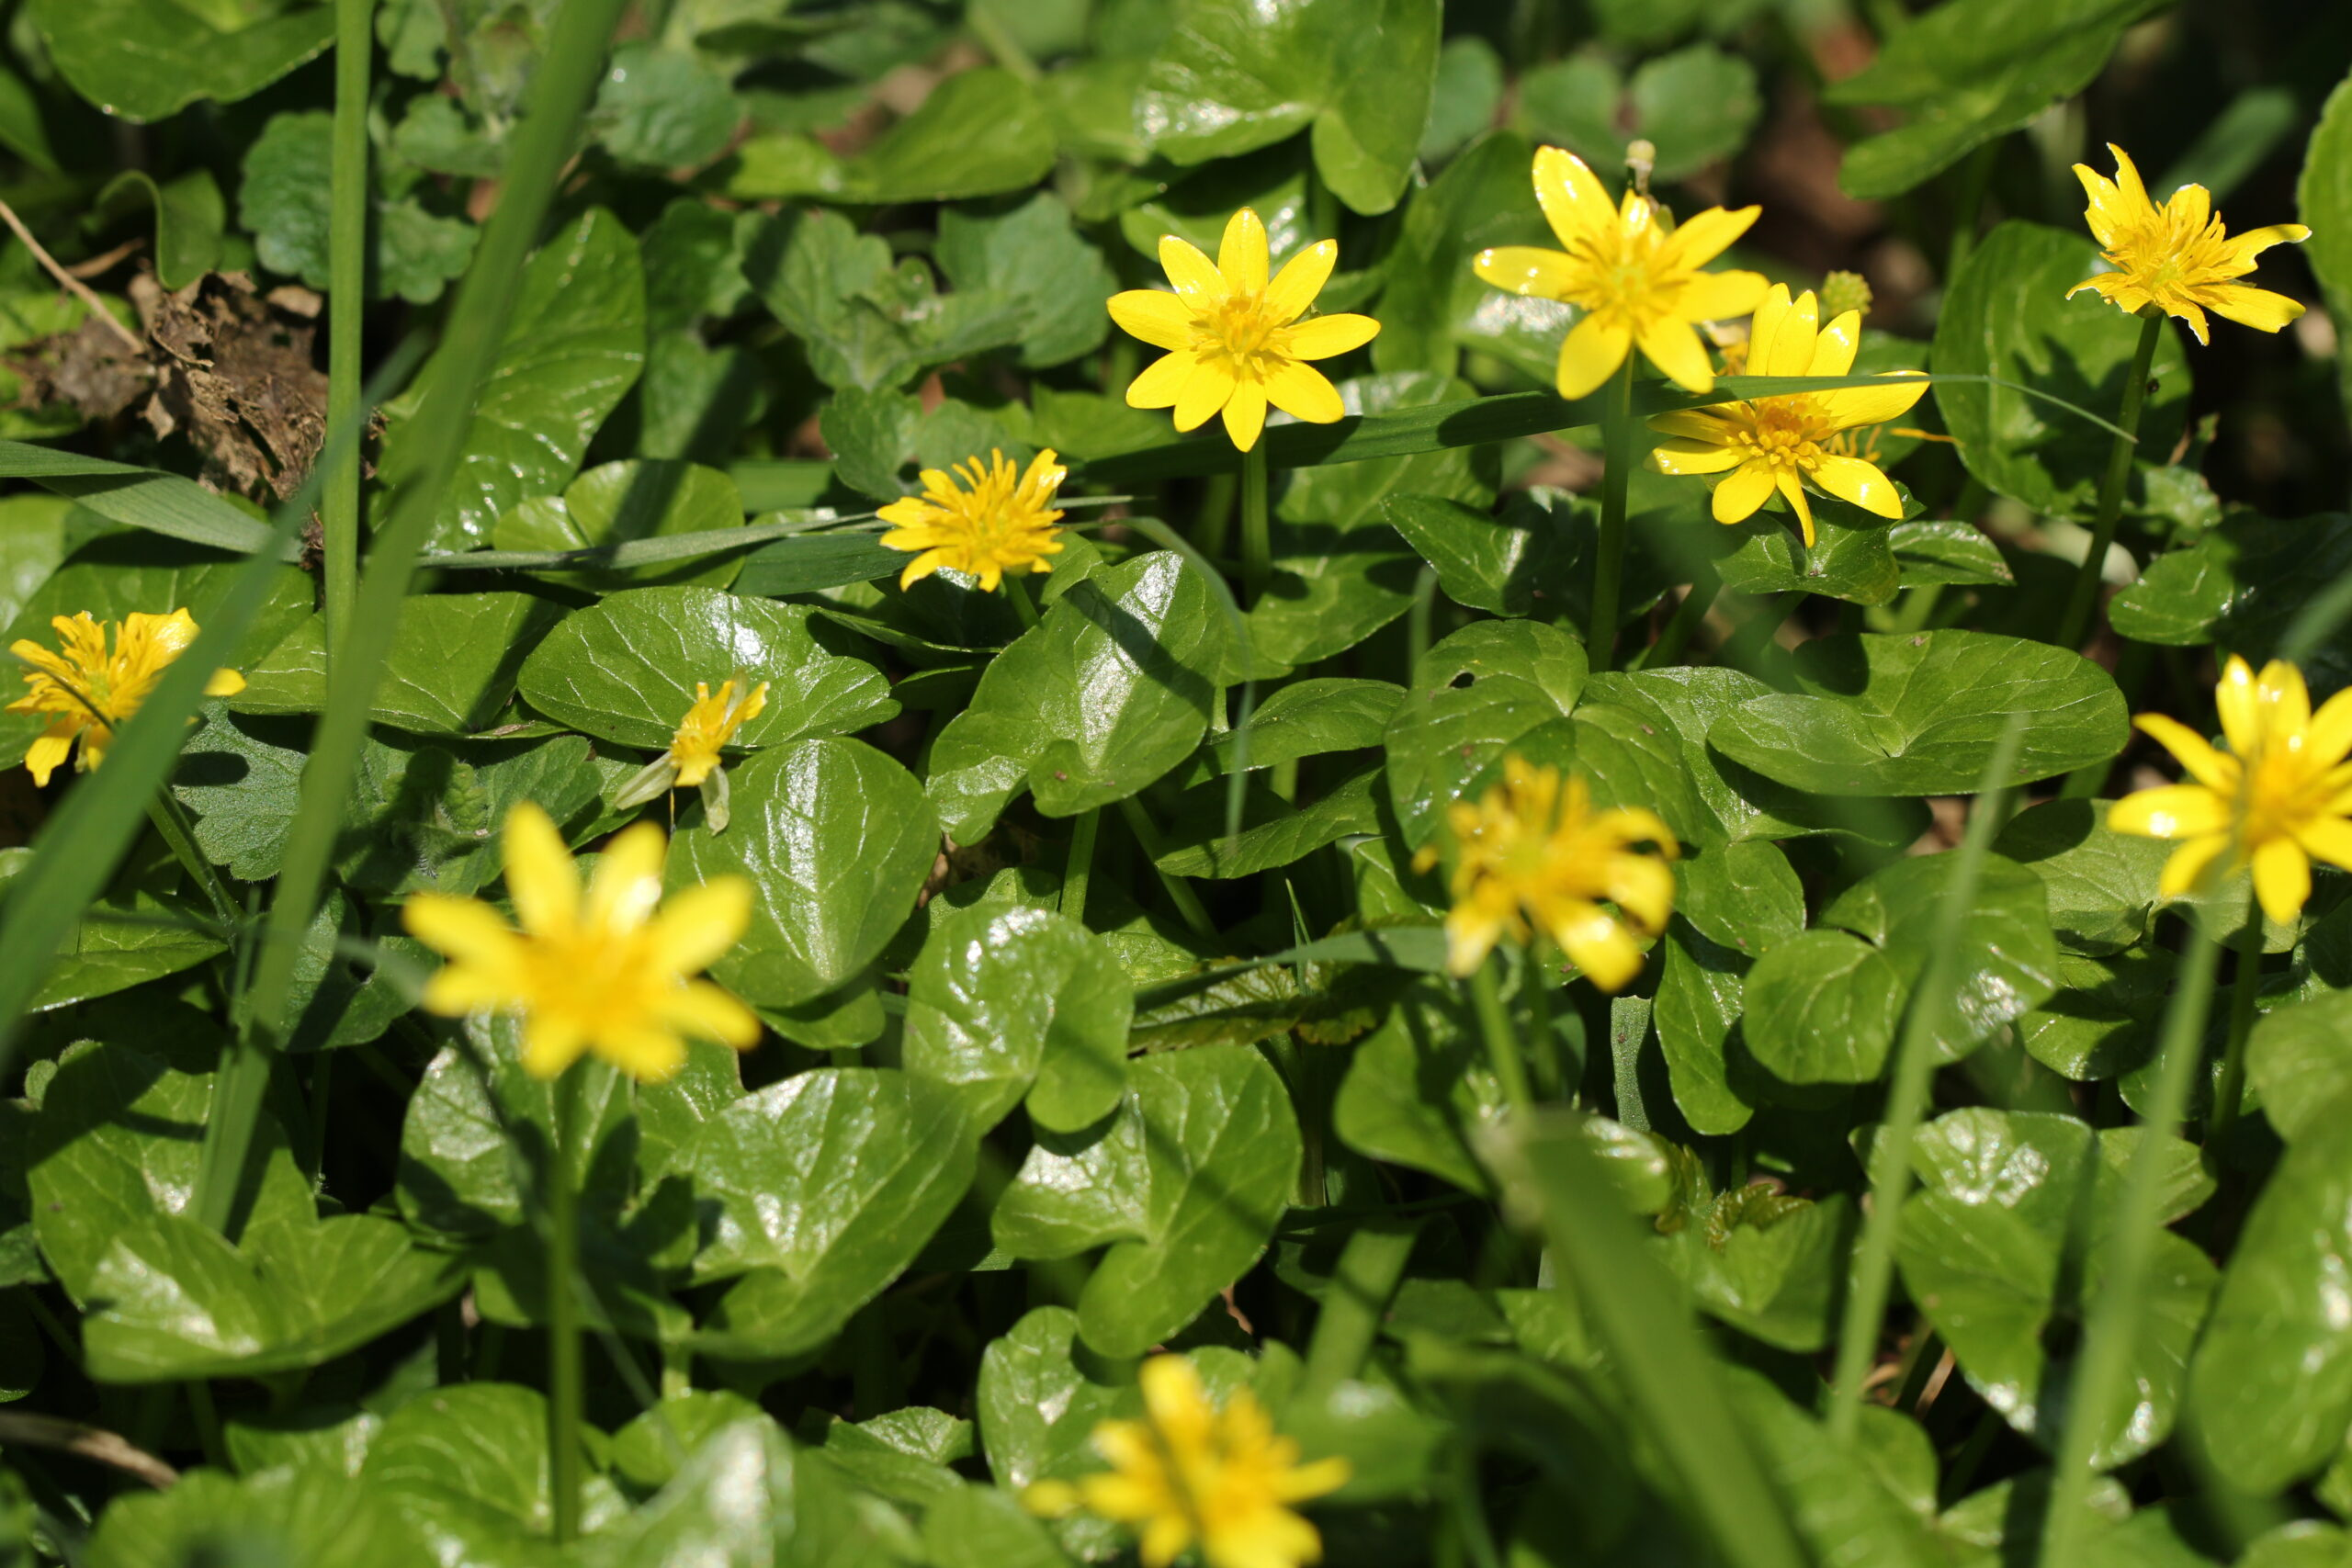 lesser celandine, the Crankles, Bury Water Meadows Group, Water Meadows, Floodplains, wildflowers, early colour in the meadows, Bury St Edmunds, floral diversity,